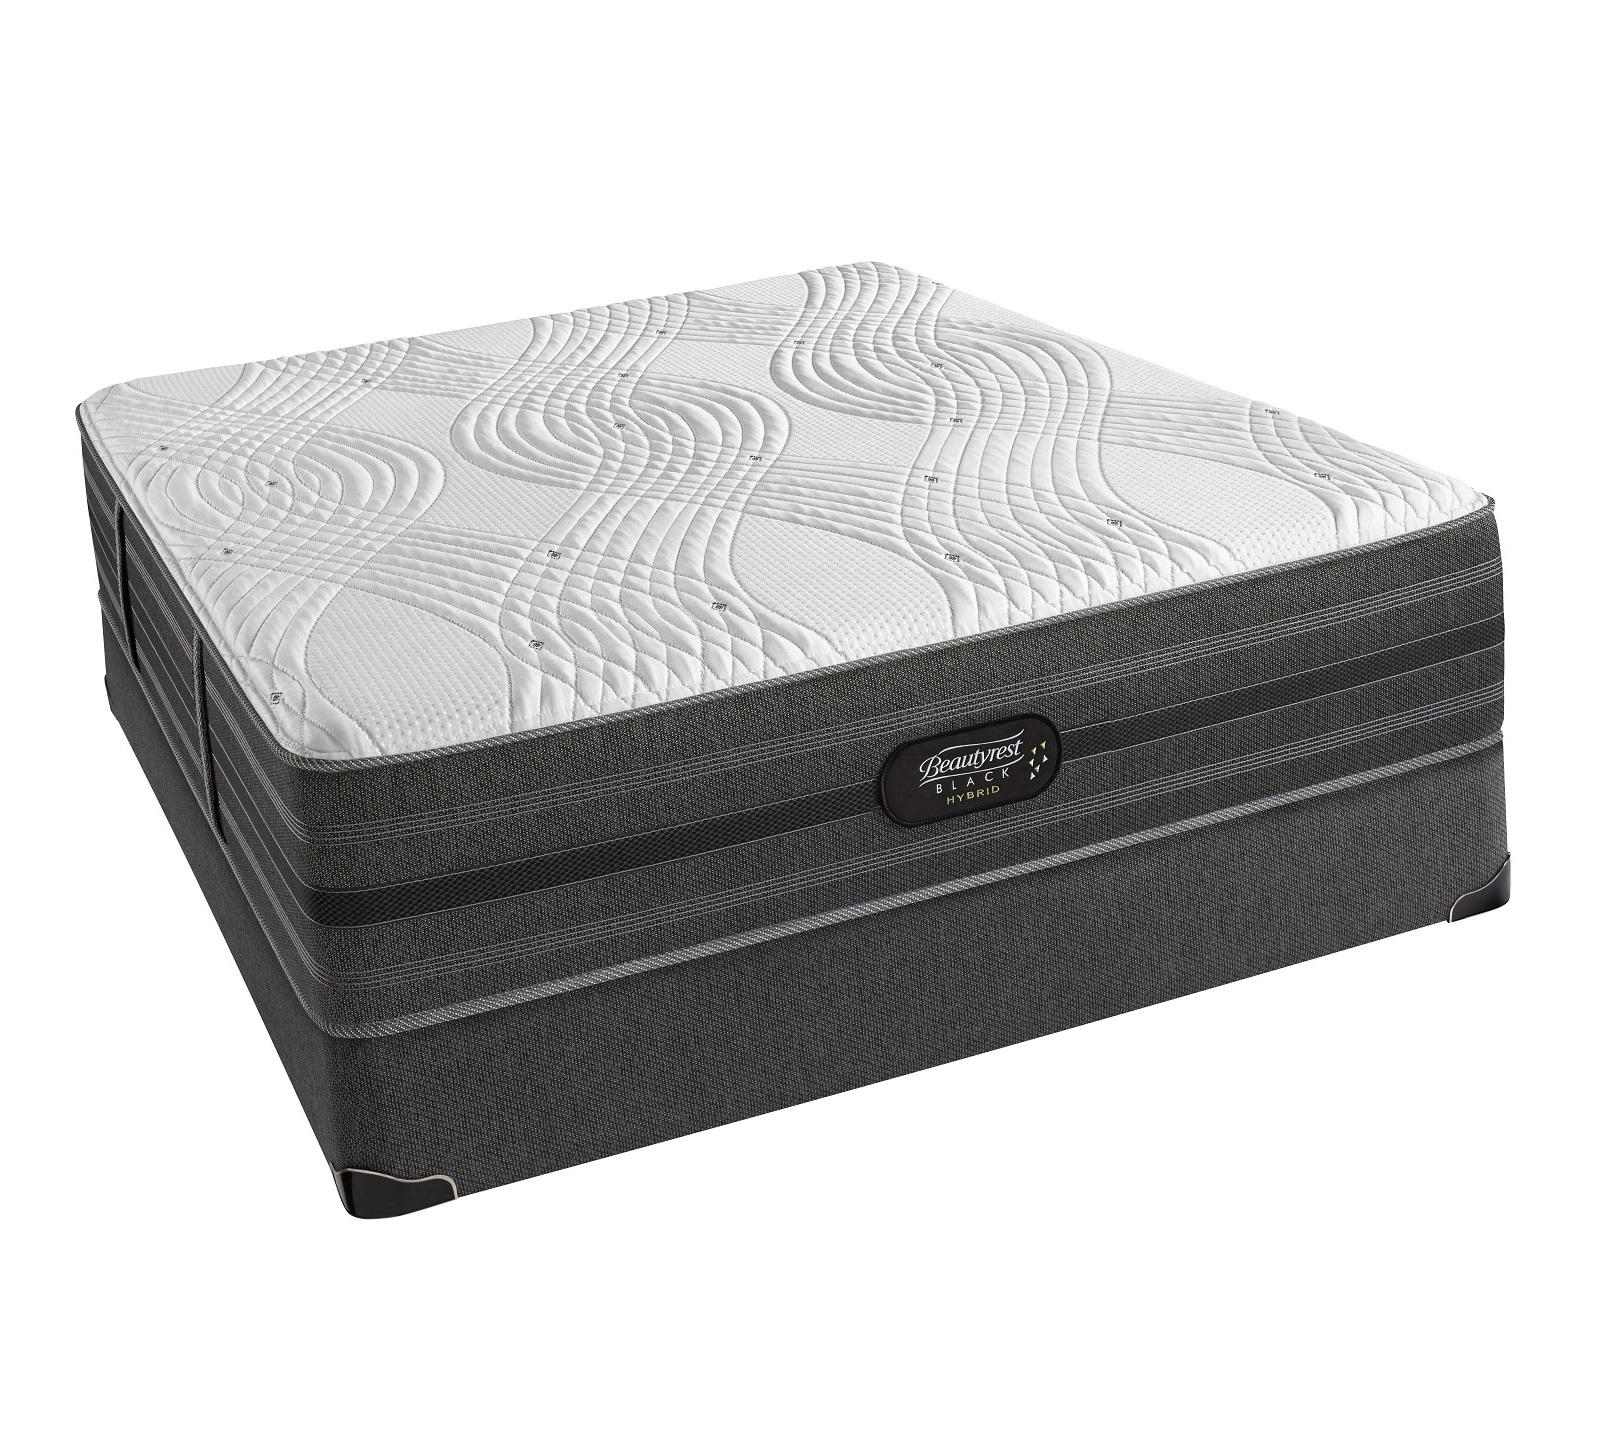 Black Hybrid Gladney 14 Inch Luxury Firm Mattress